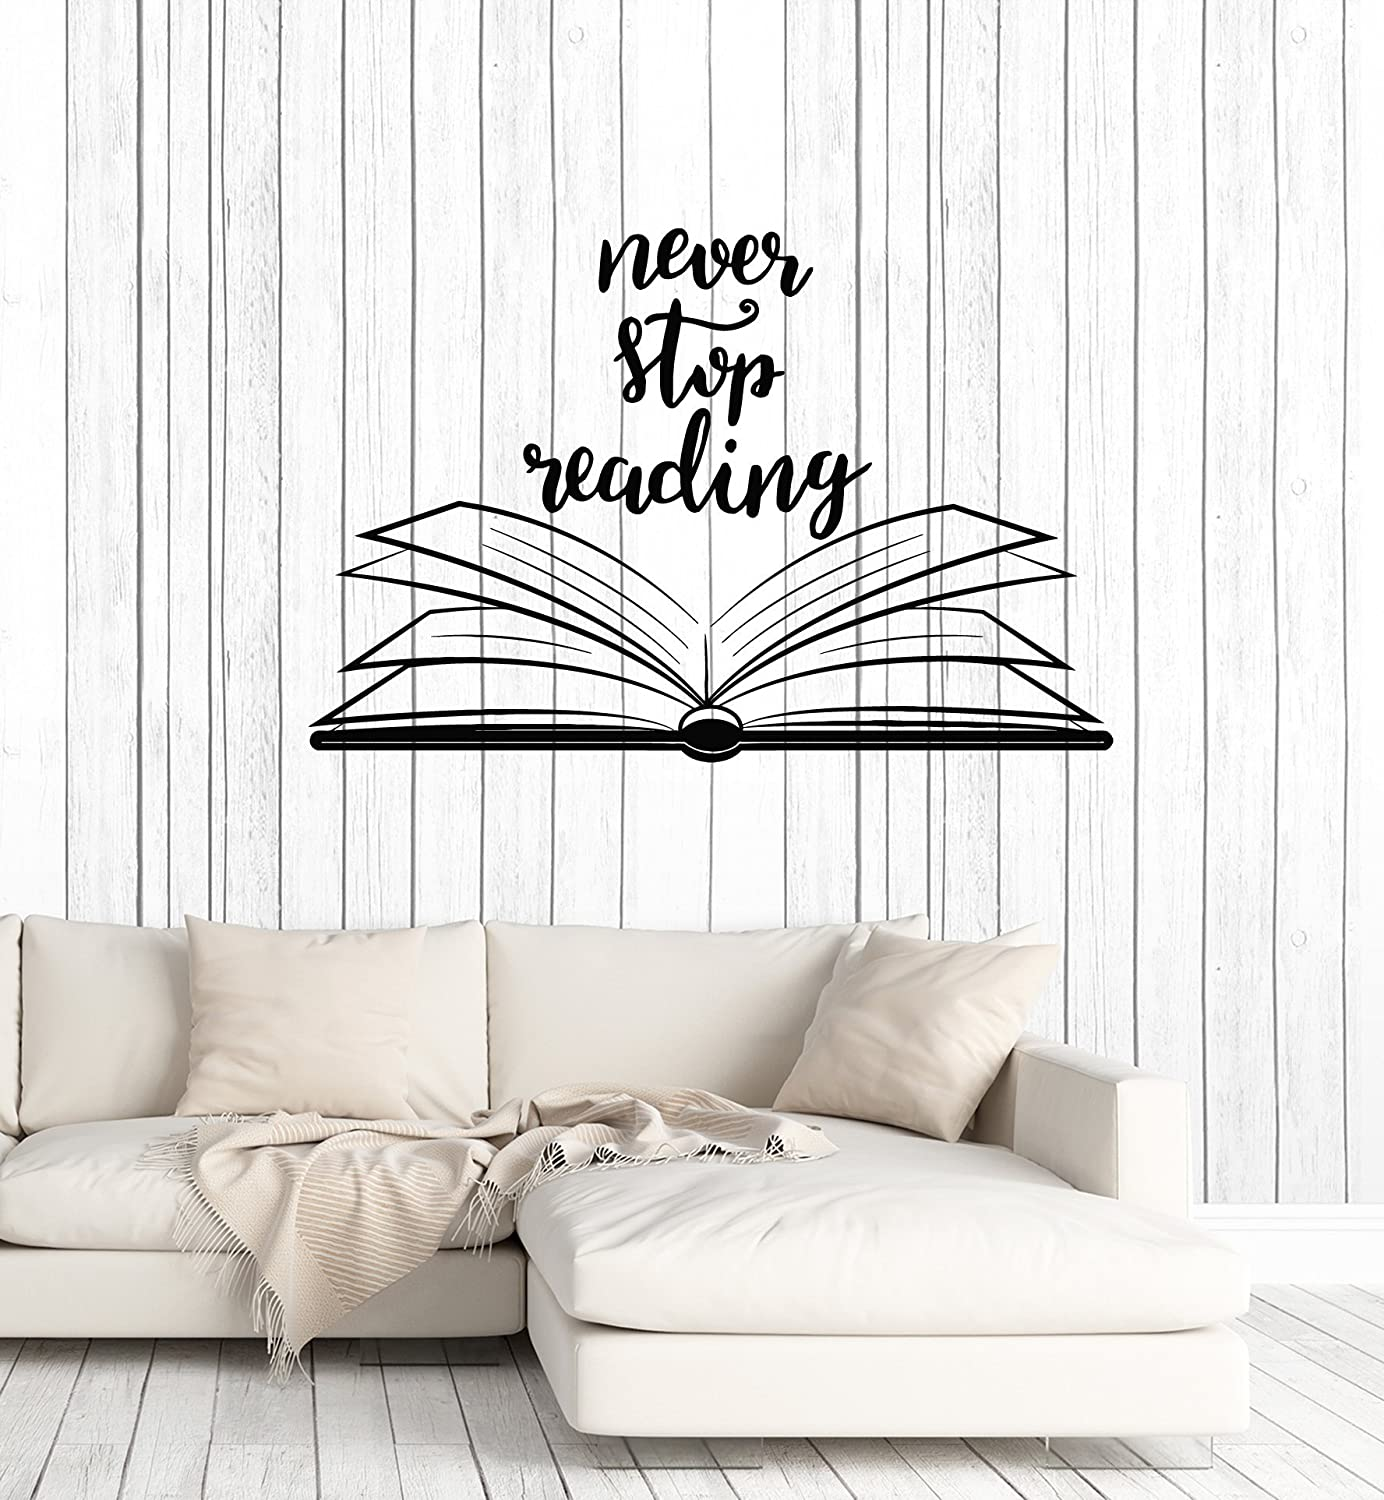 Amazon com large vinyl wall decal open book quote reading room library decor stickers mural ig5184 black home kitchen